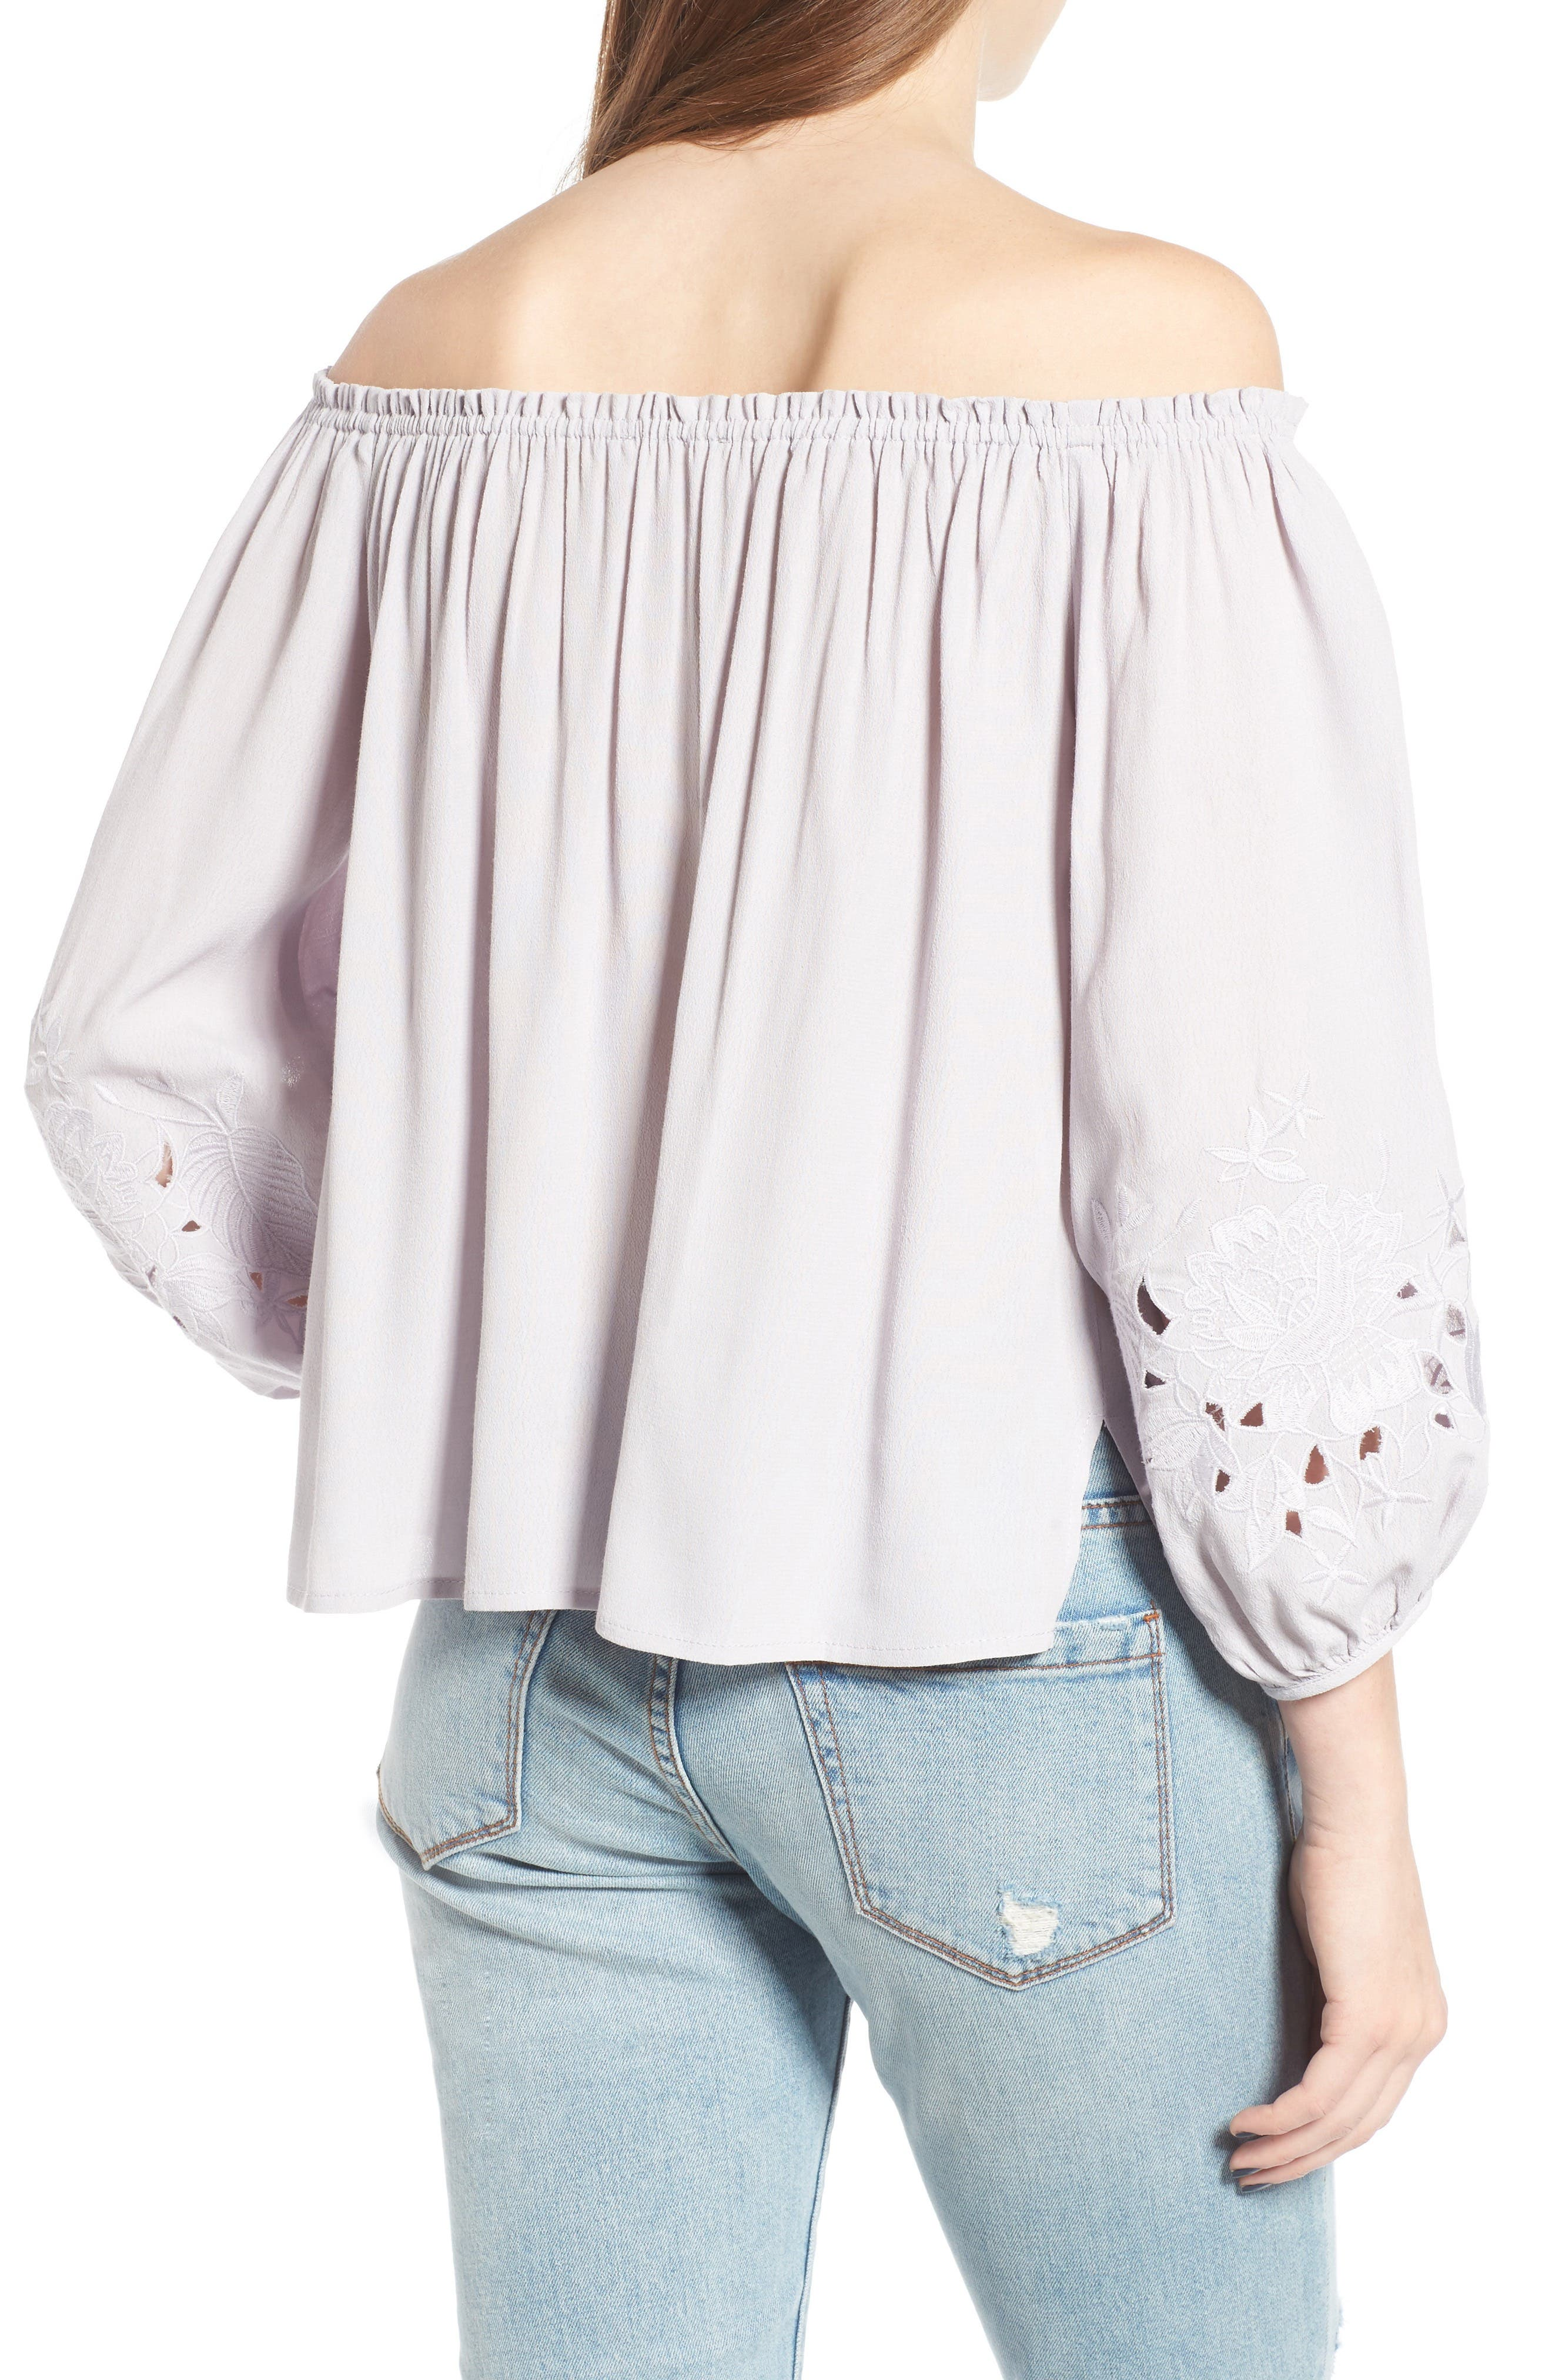 ASTR THE LABEL, Embroidered Off the Shoulder Top, Alternate thumbnail 2, color, 500